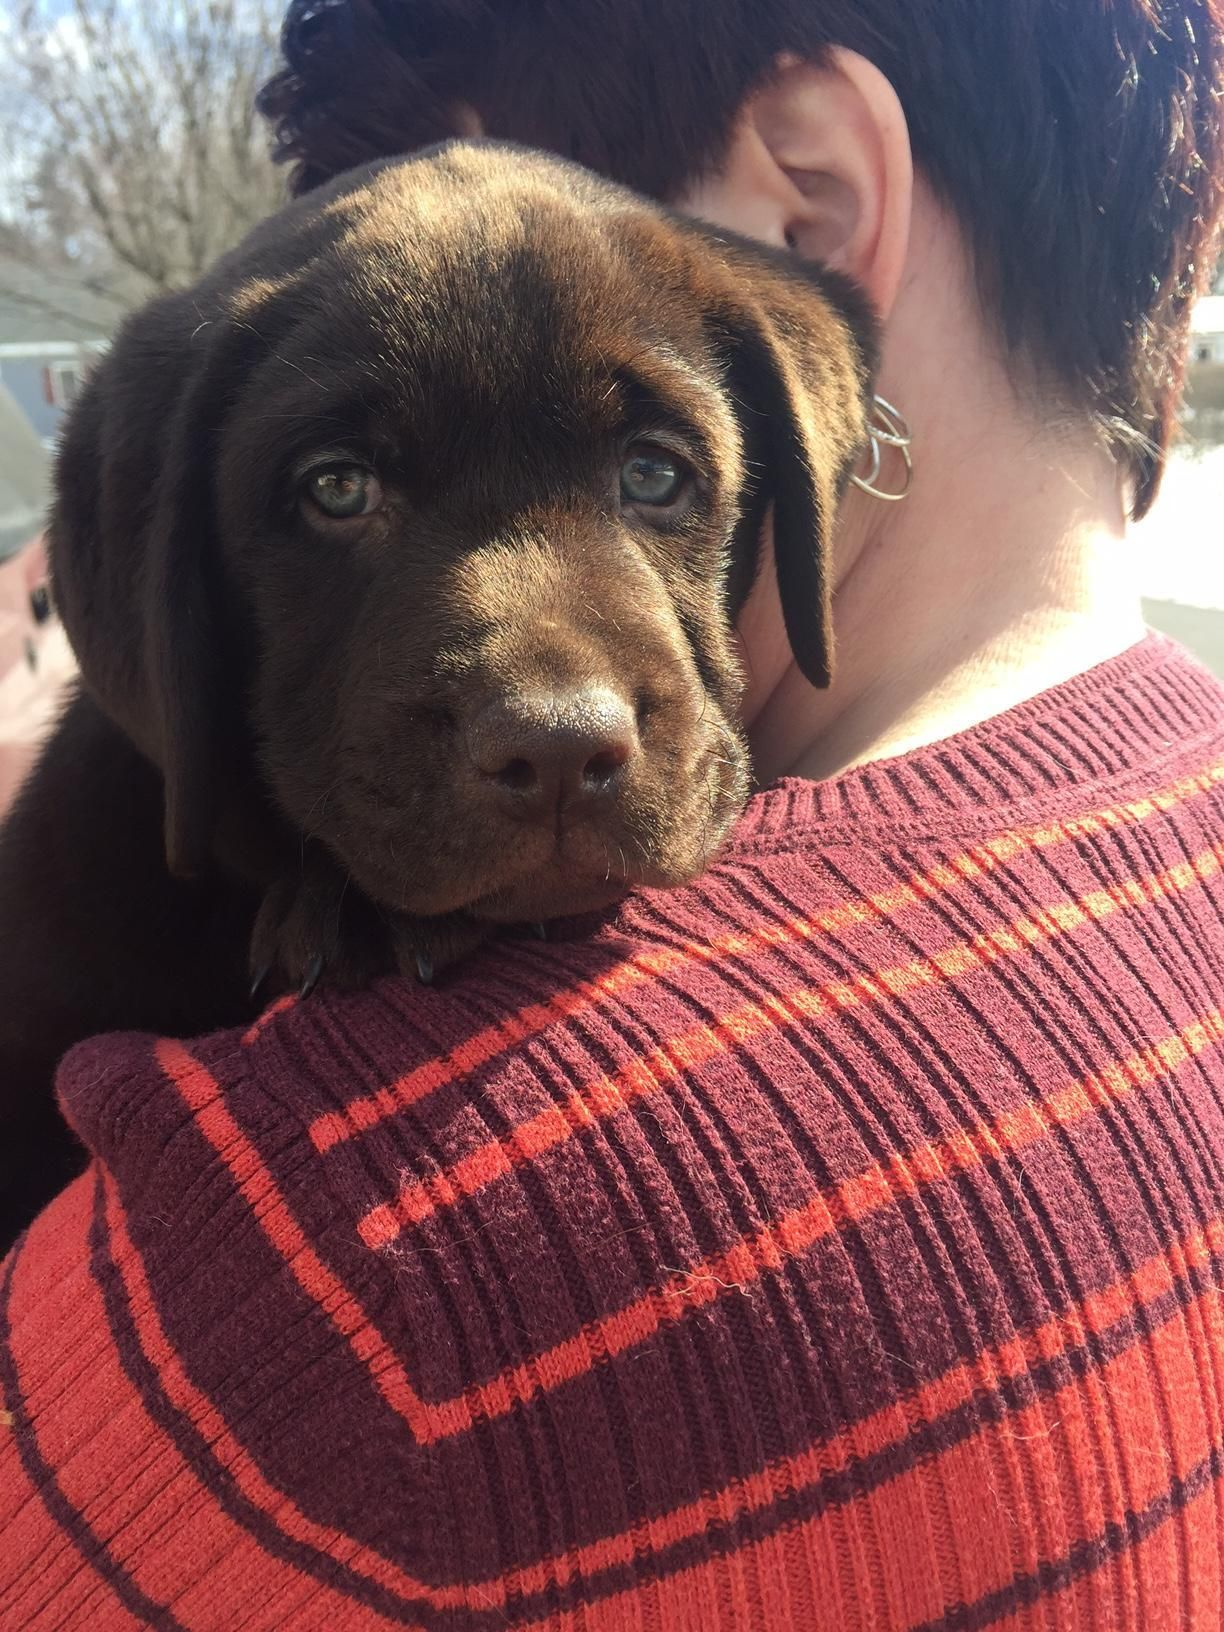 13lbs of Chocolate Love Came Home This Weekend http://ift.tt/2luGYUU